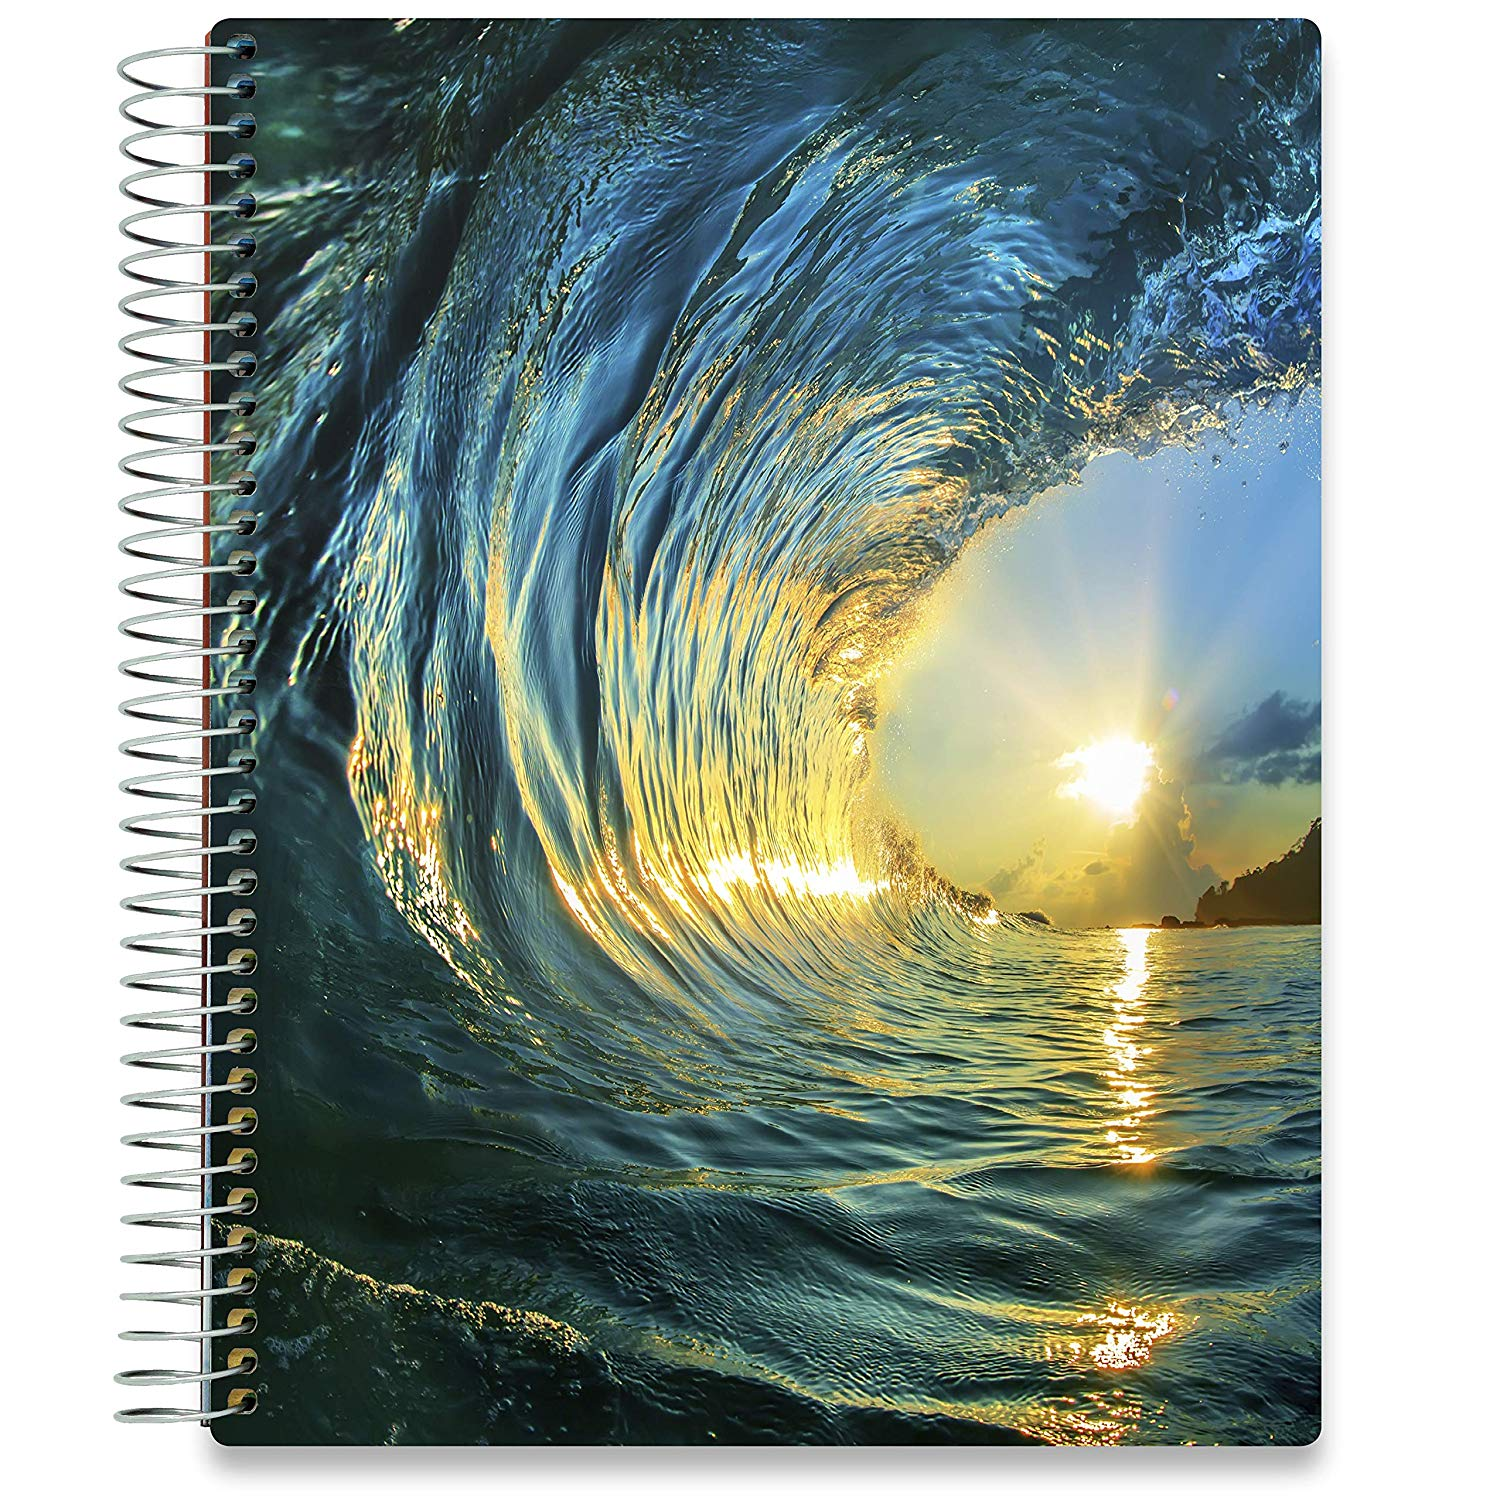 NEW: April 2020-2021 Planner - 8.5x11 - Ocean Wave-Office Product-Tools4Wisdom